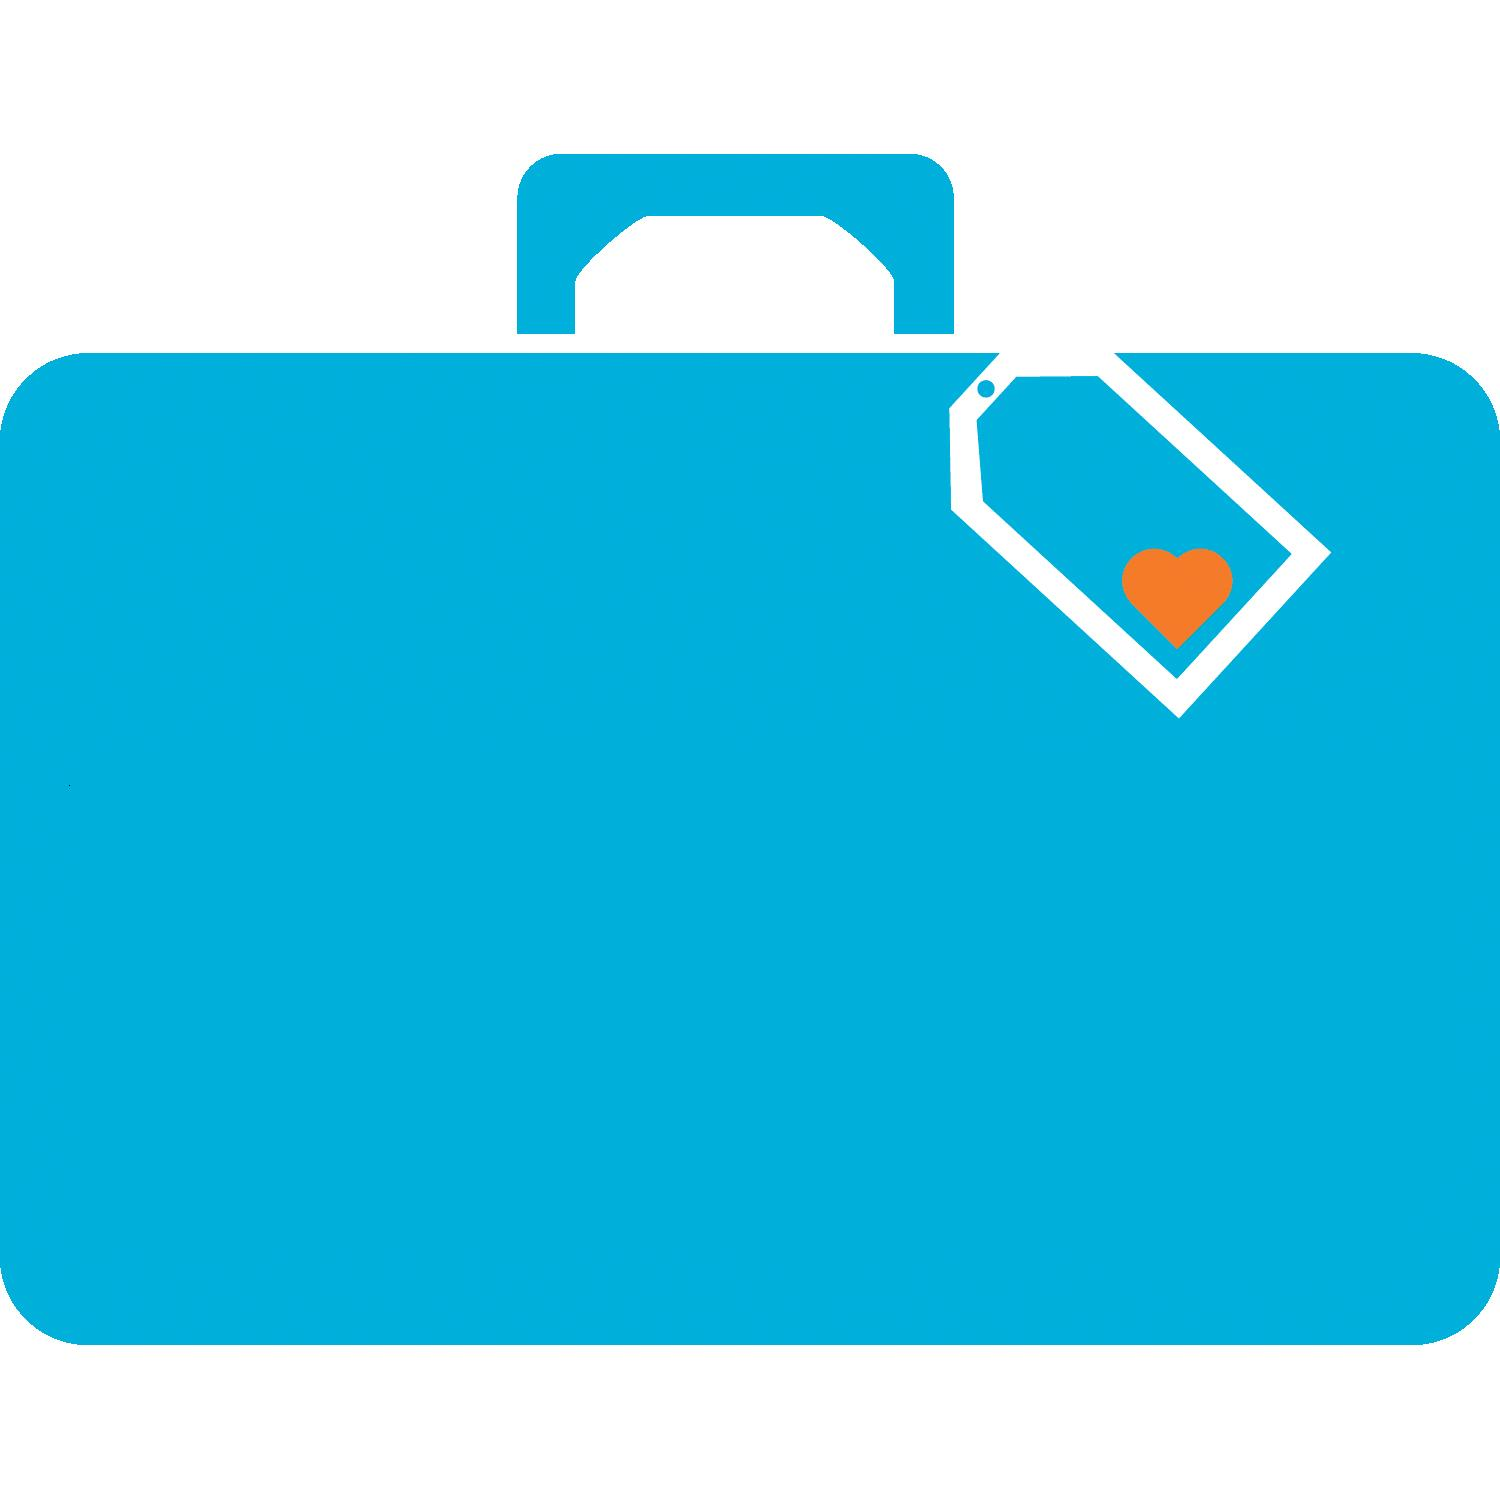 Suitcase Clipart, Download Free Clip Art on Clipart Bay.